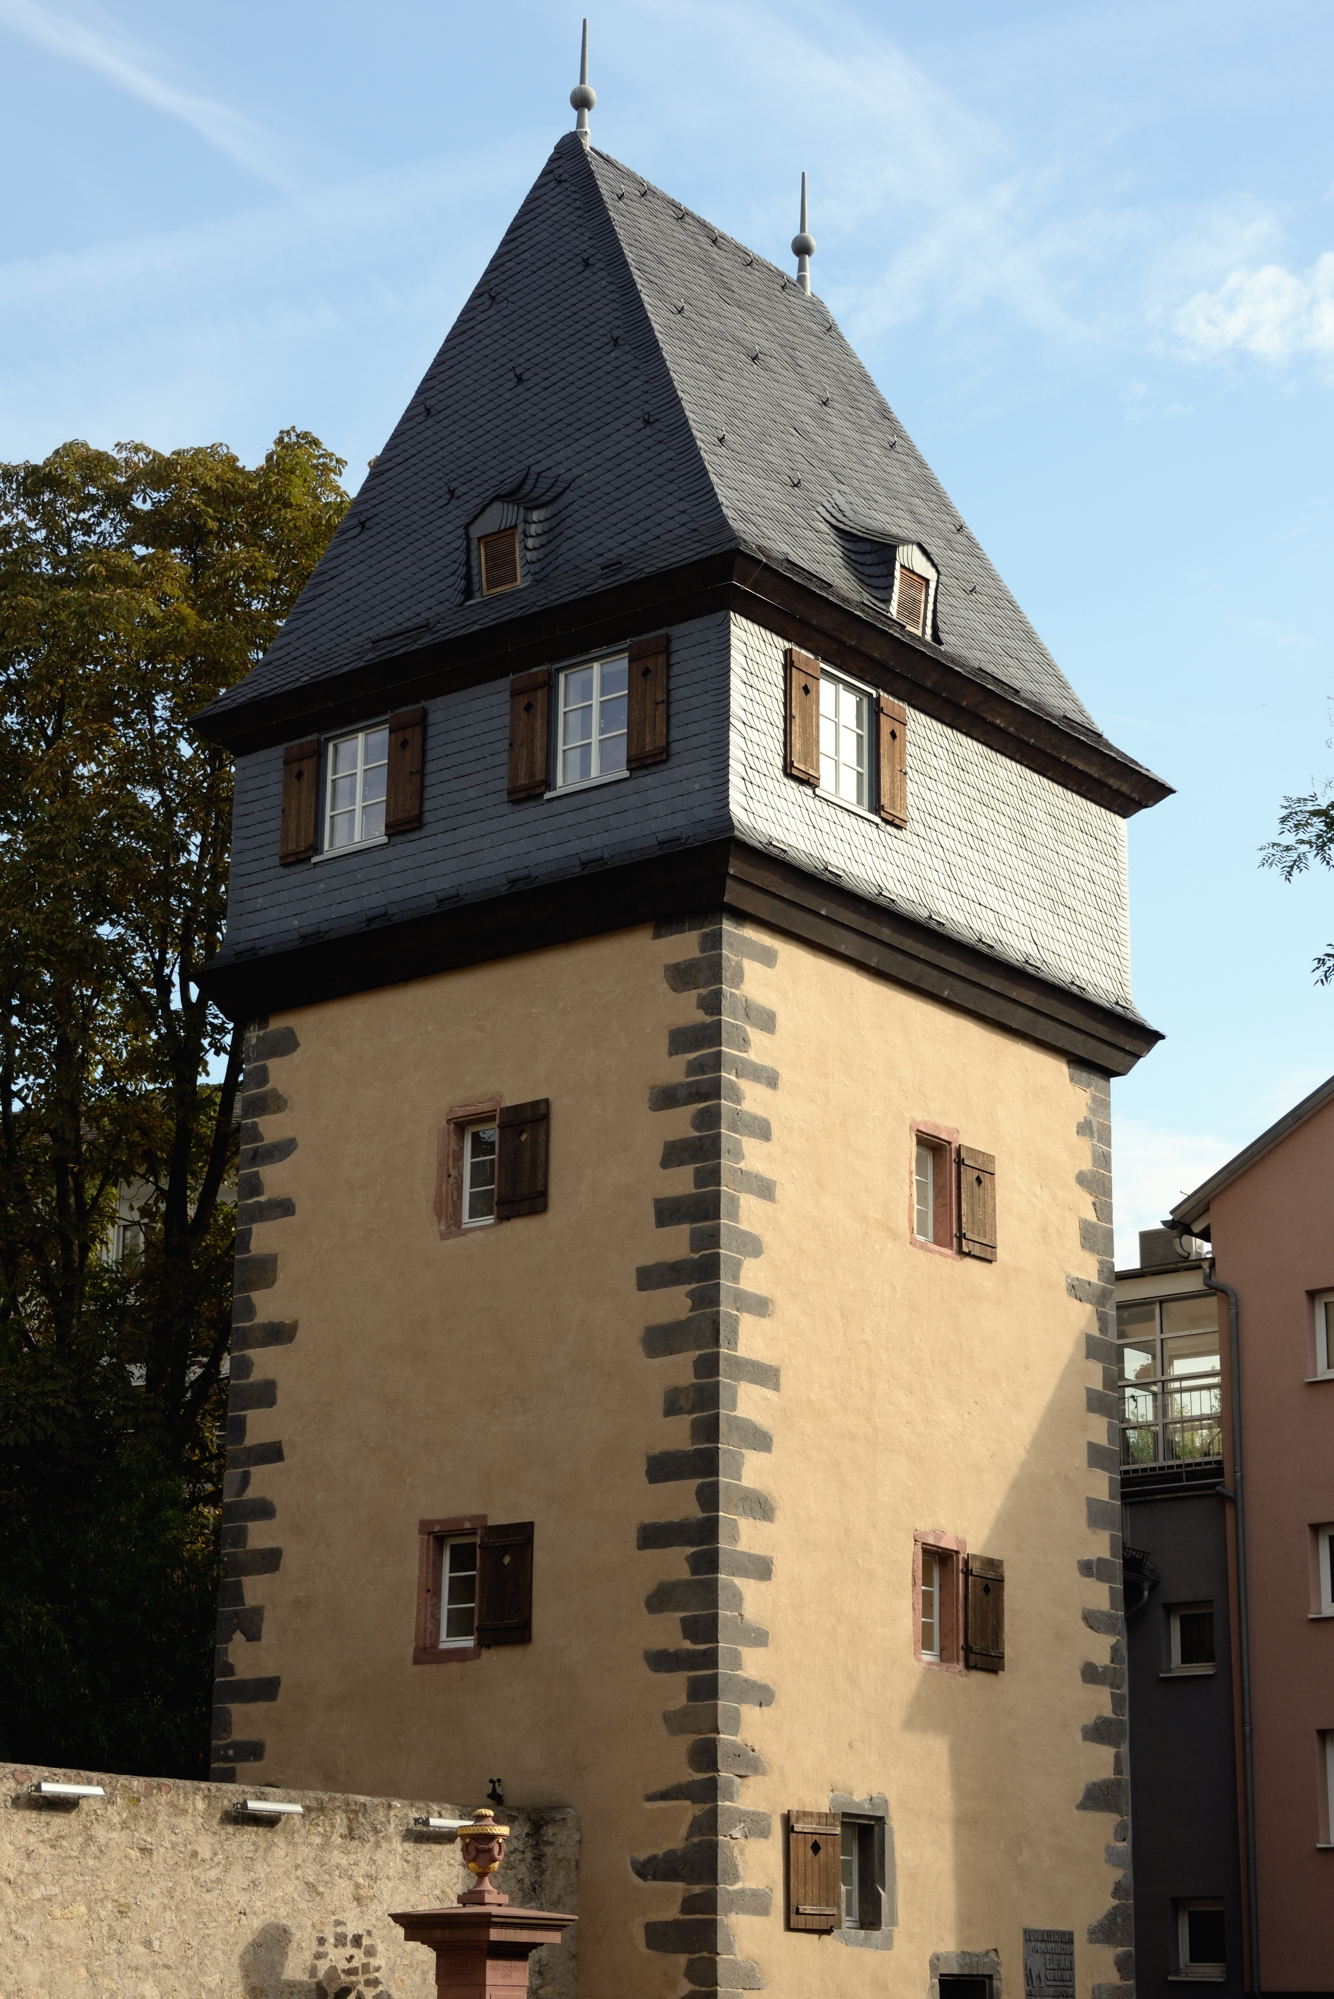 Kuhhirtenturm, now a museum to the composer Hindemith, open on Sundays.